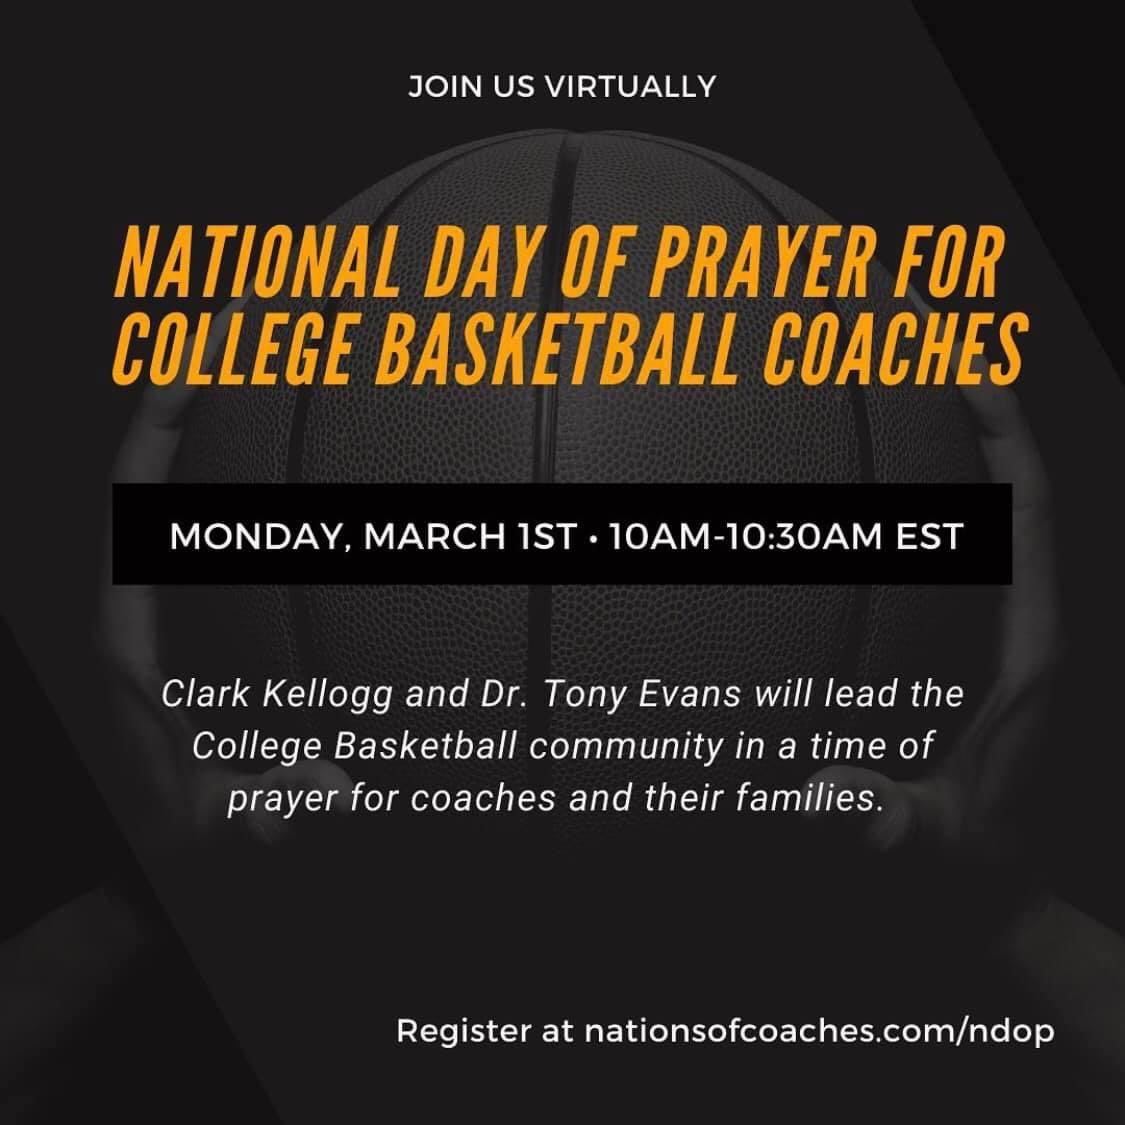 Tony Evans to Lead National Day of Prayer for College Coaches on March 1 With South Carolina State Coach Murray Garvin and CBS College Basketball Analyst Clark Kellogg